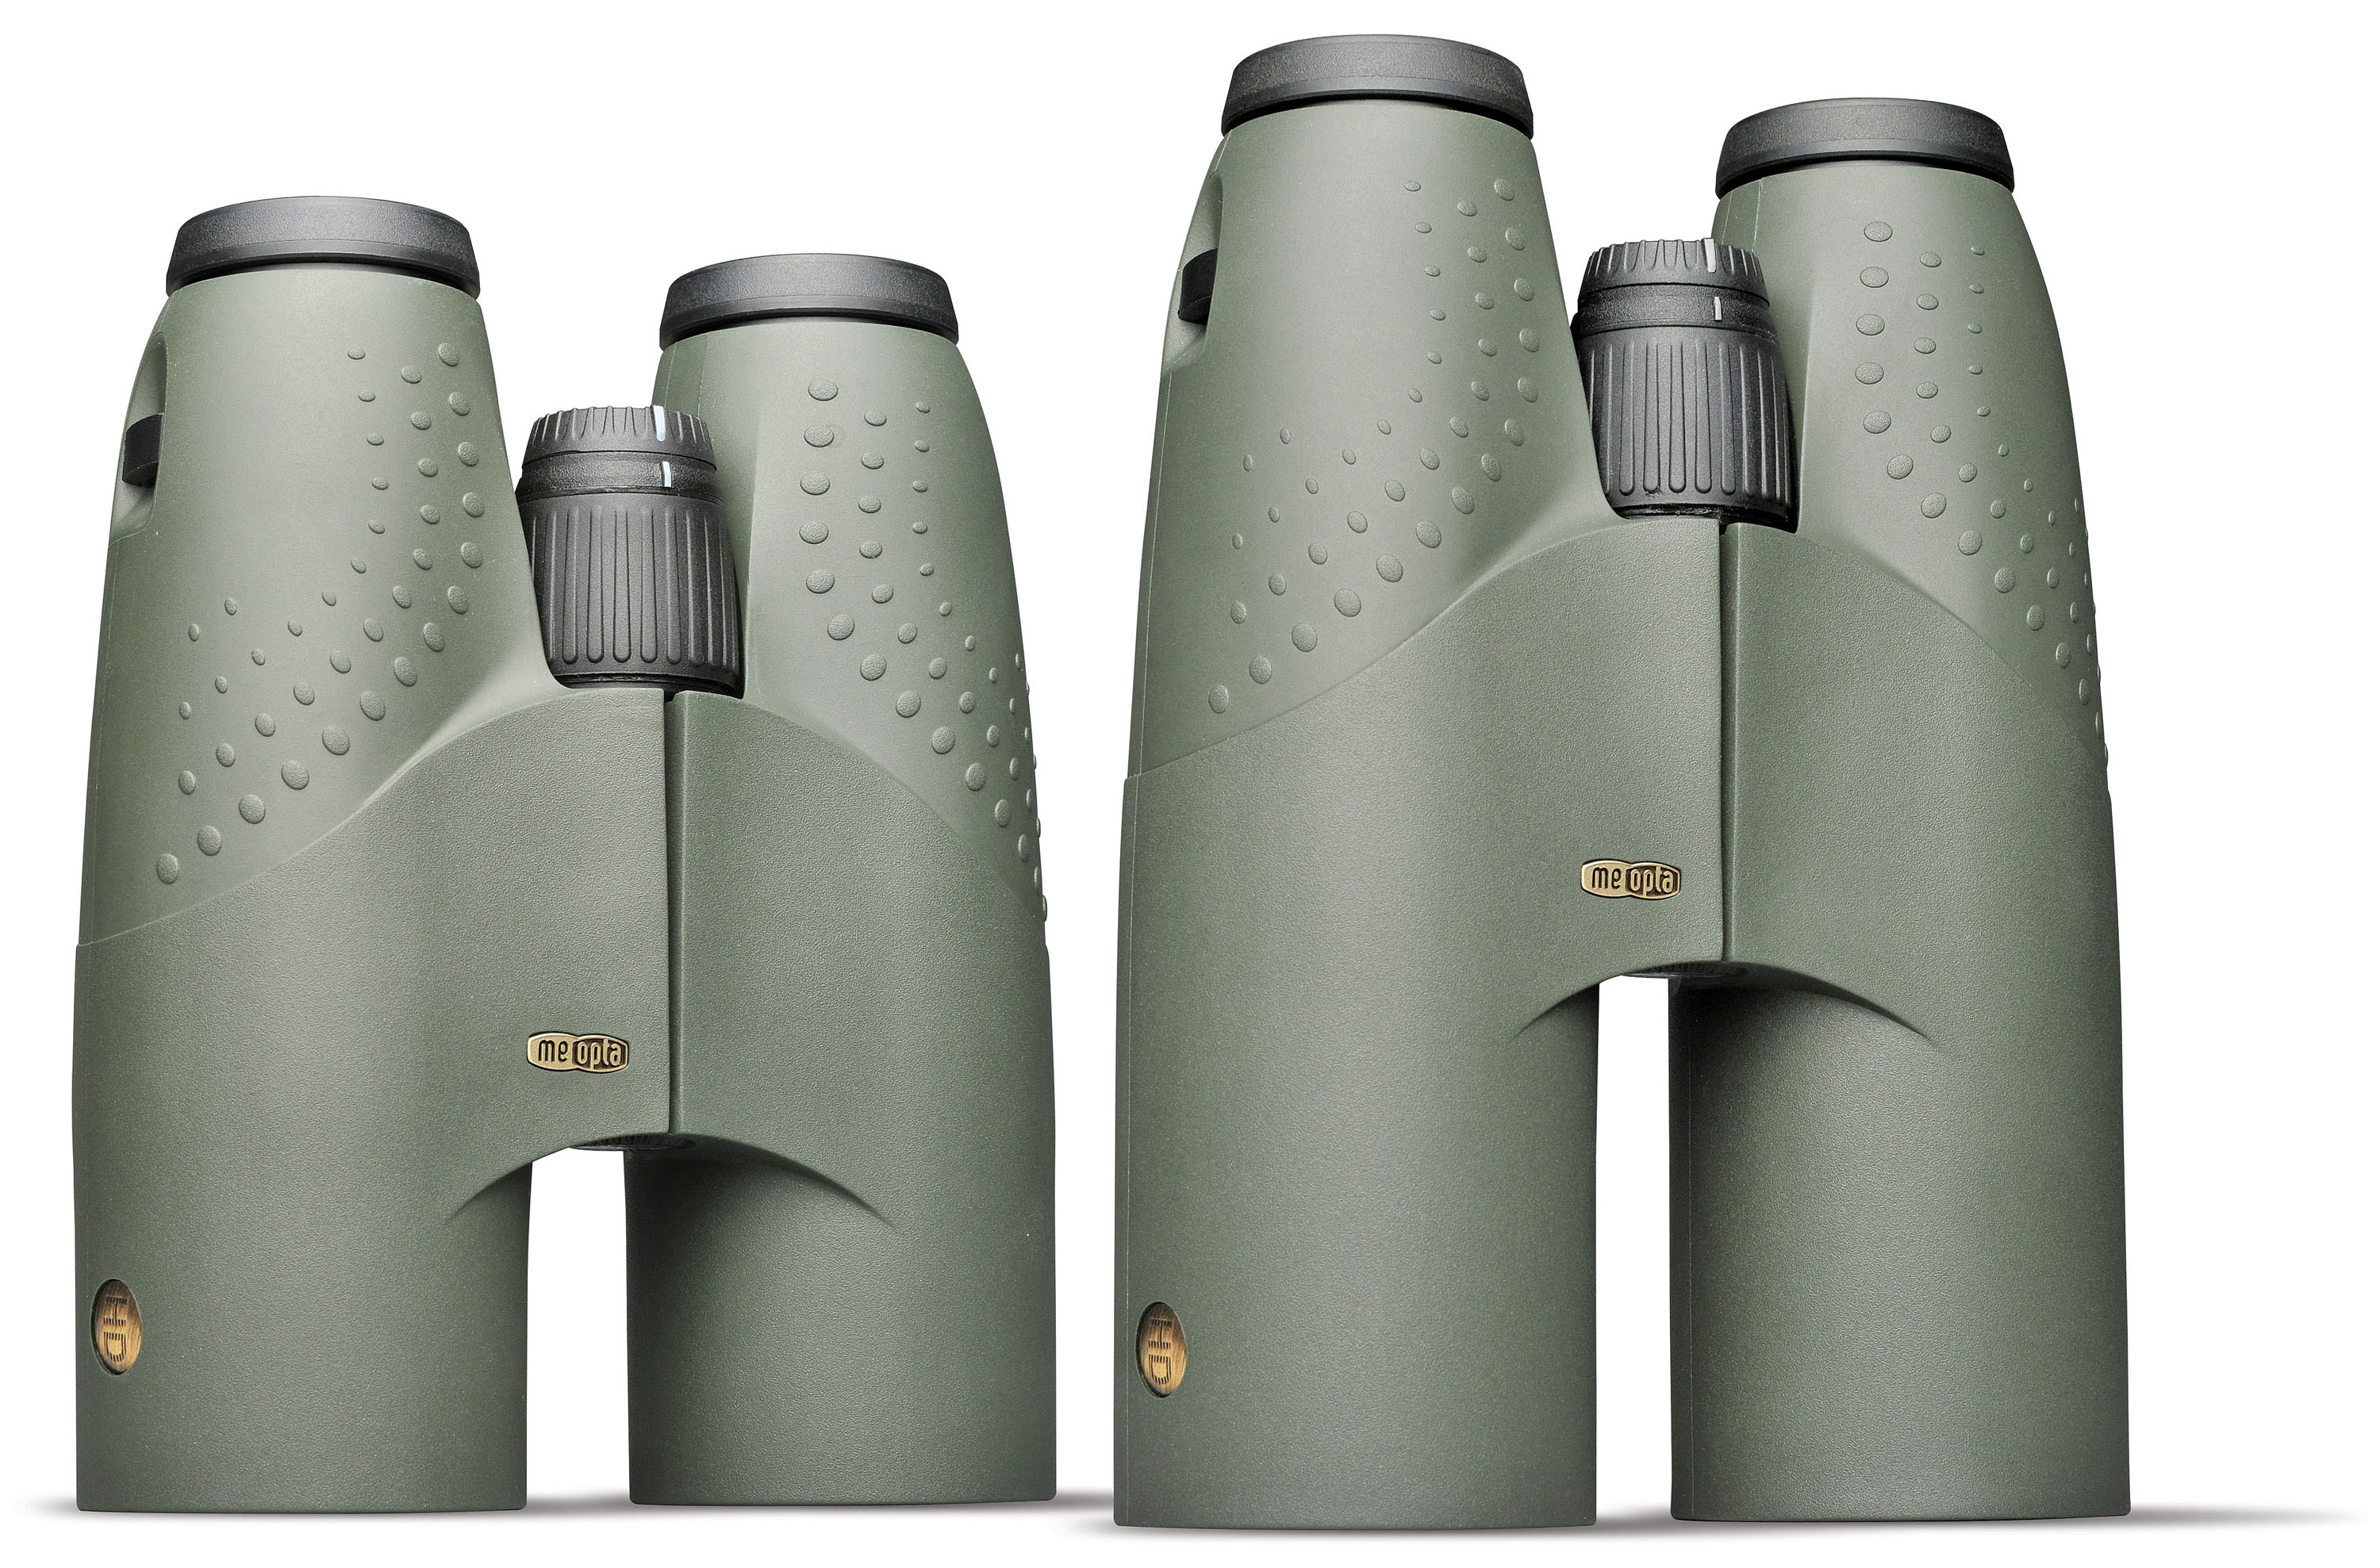 Meopta MeoStar 12x50 and 15x56 HD Binoculars